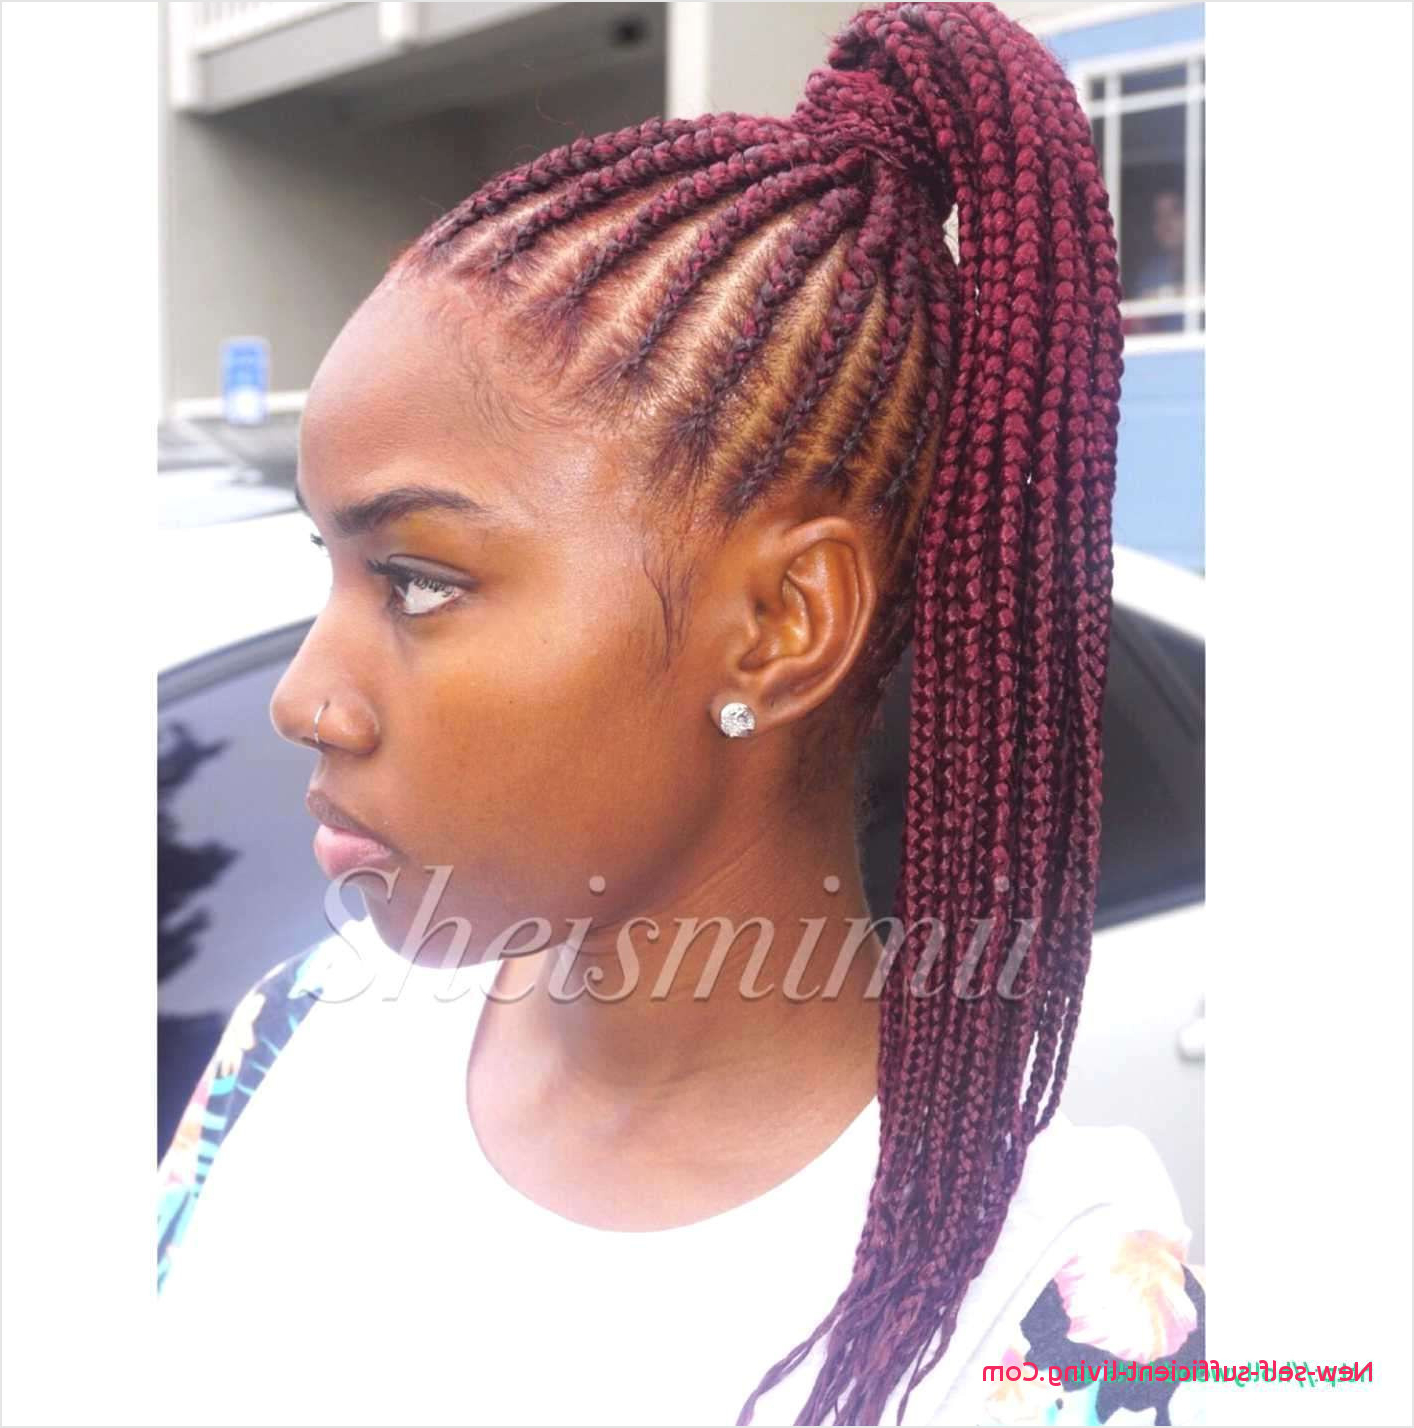 Hairstyles : Cornrows Braided Hairstyles Most Amazing New With Regard To Recent Cornrow Braided Bun Hairstyles (View 10 of 20)